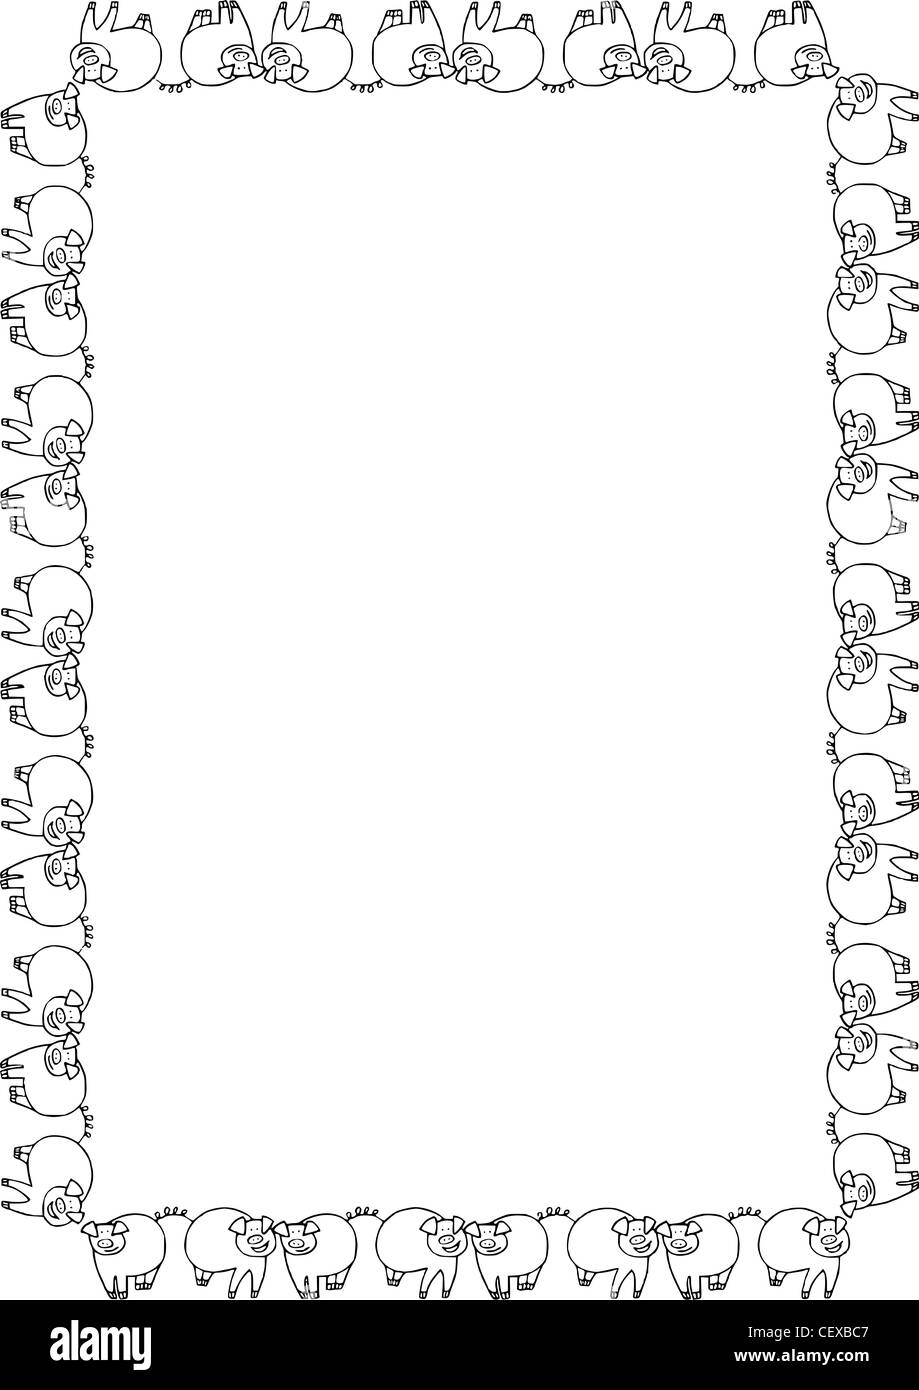 Photo Page: A4 Fitted Full Frame Border Layout In A Meandering Style